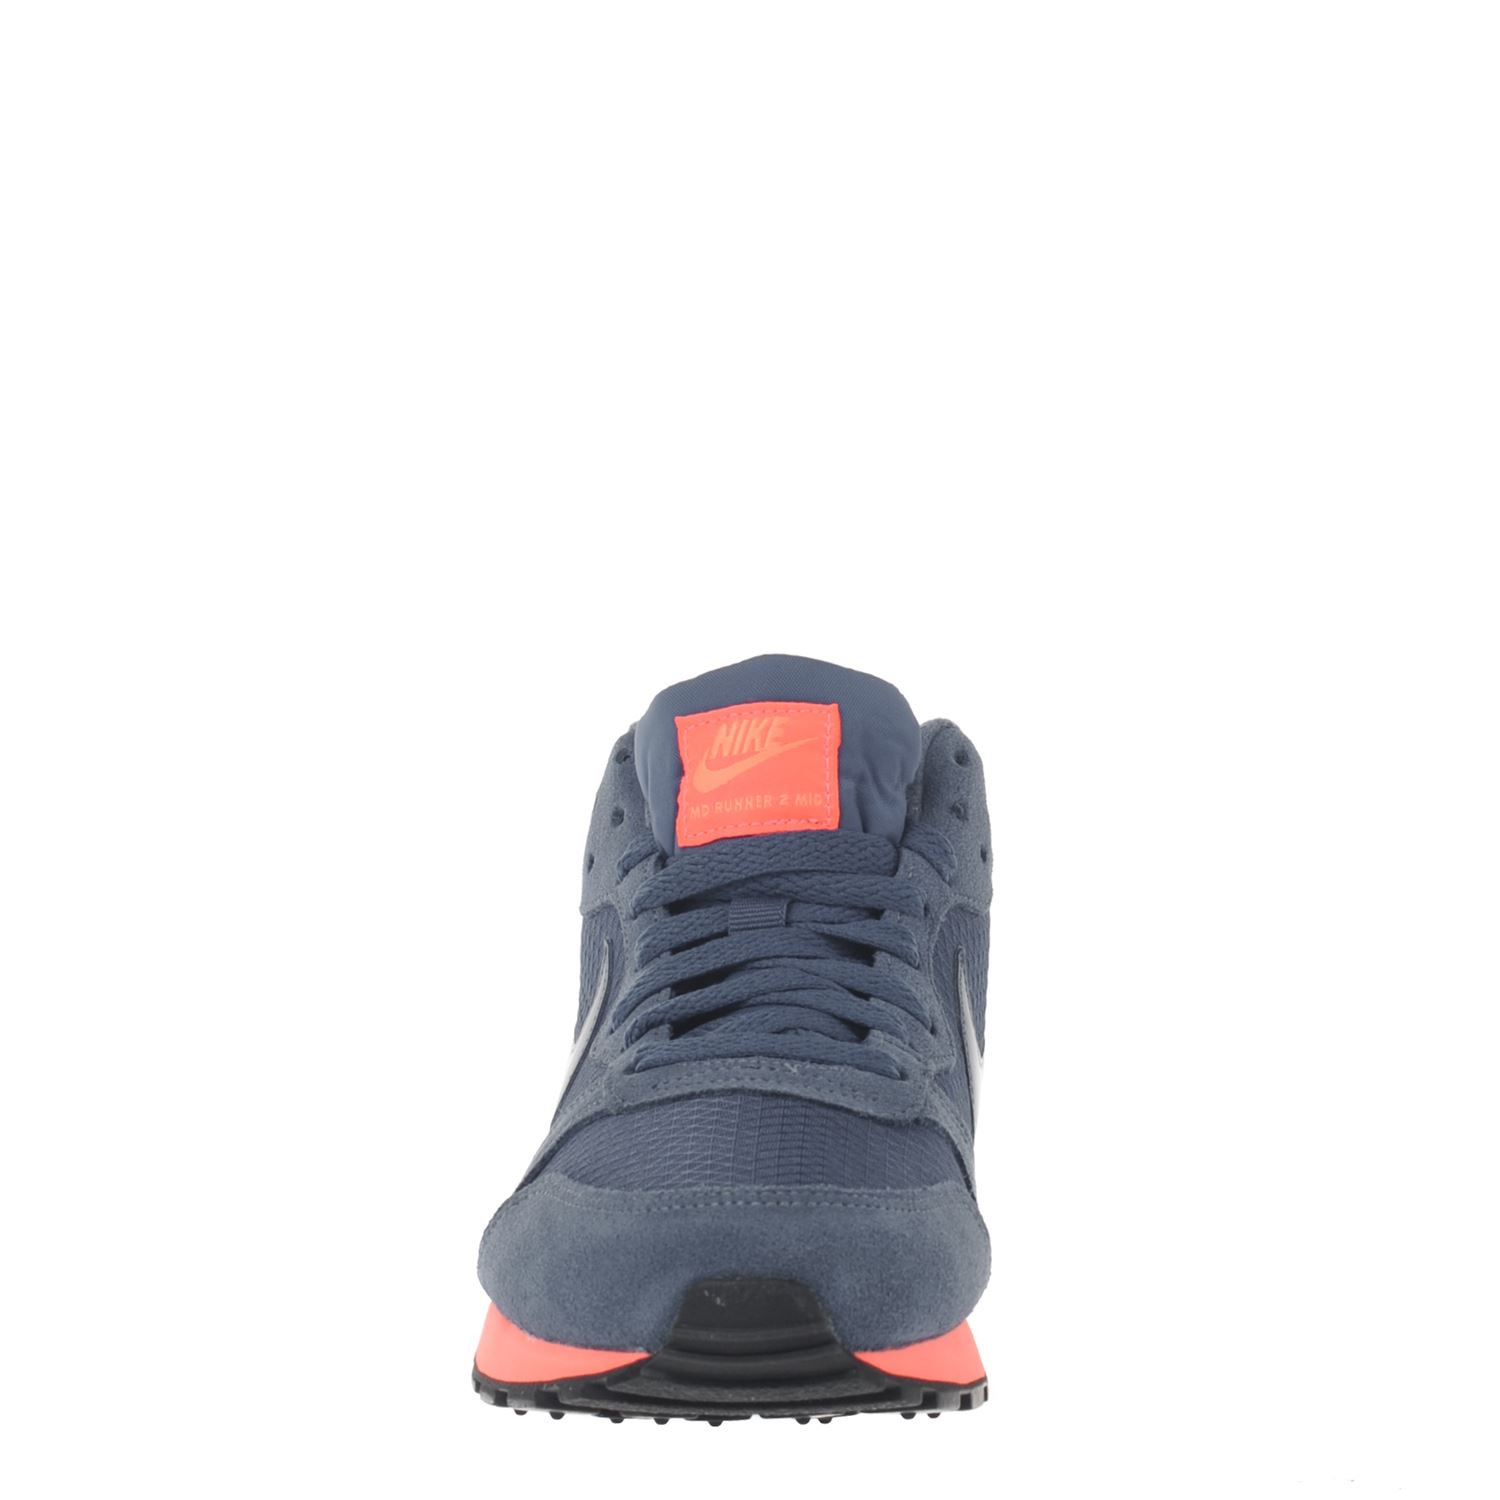 cheap for discount 07e54 2fb31 Nike Sneakers Dames Donkerblauw